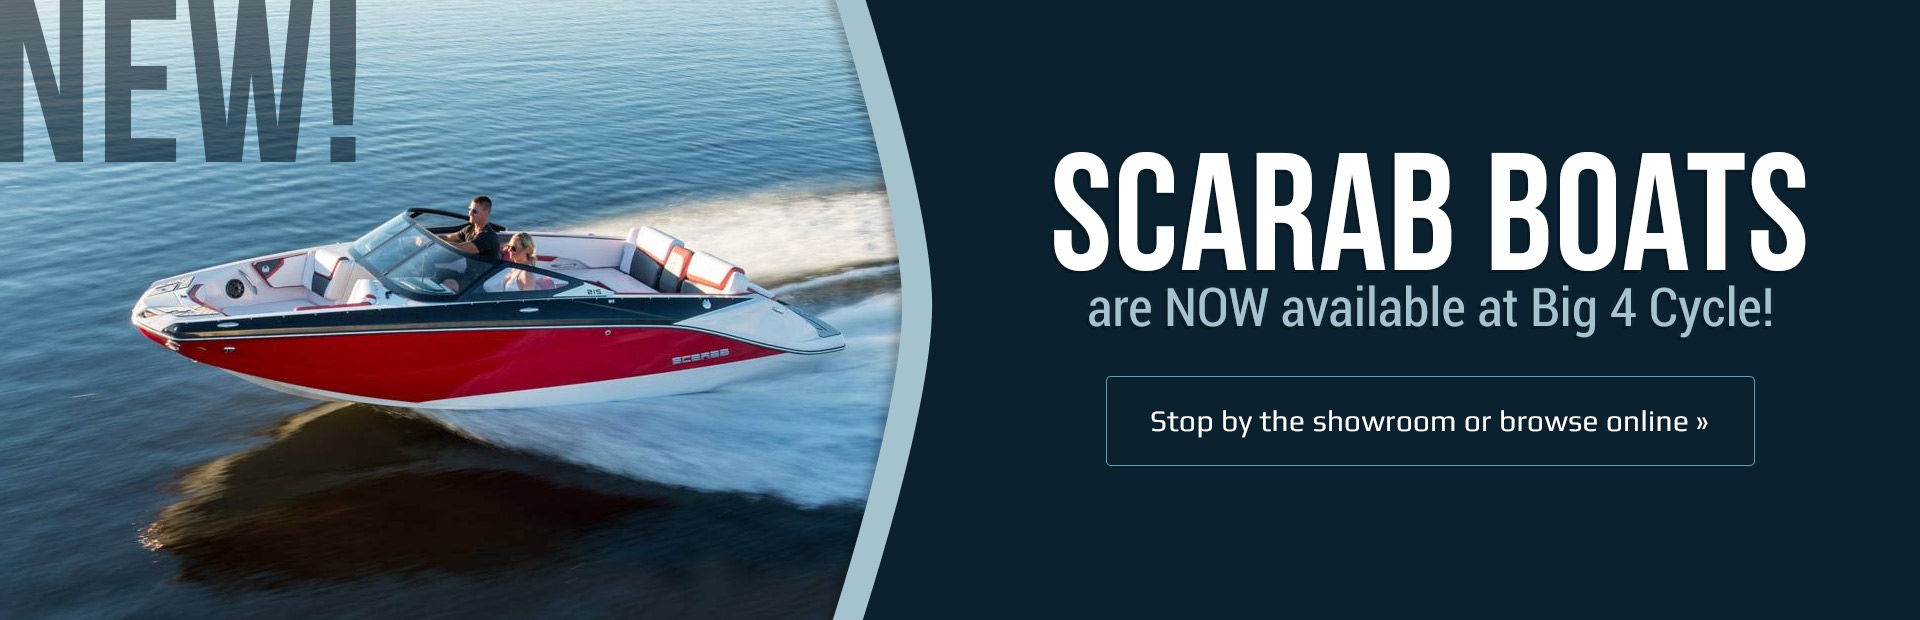 Scarab boats are now available at Big 4 Cycle!